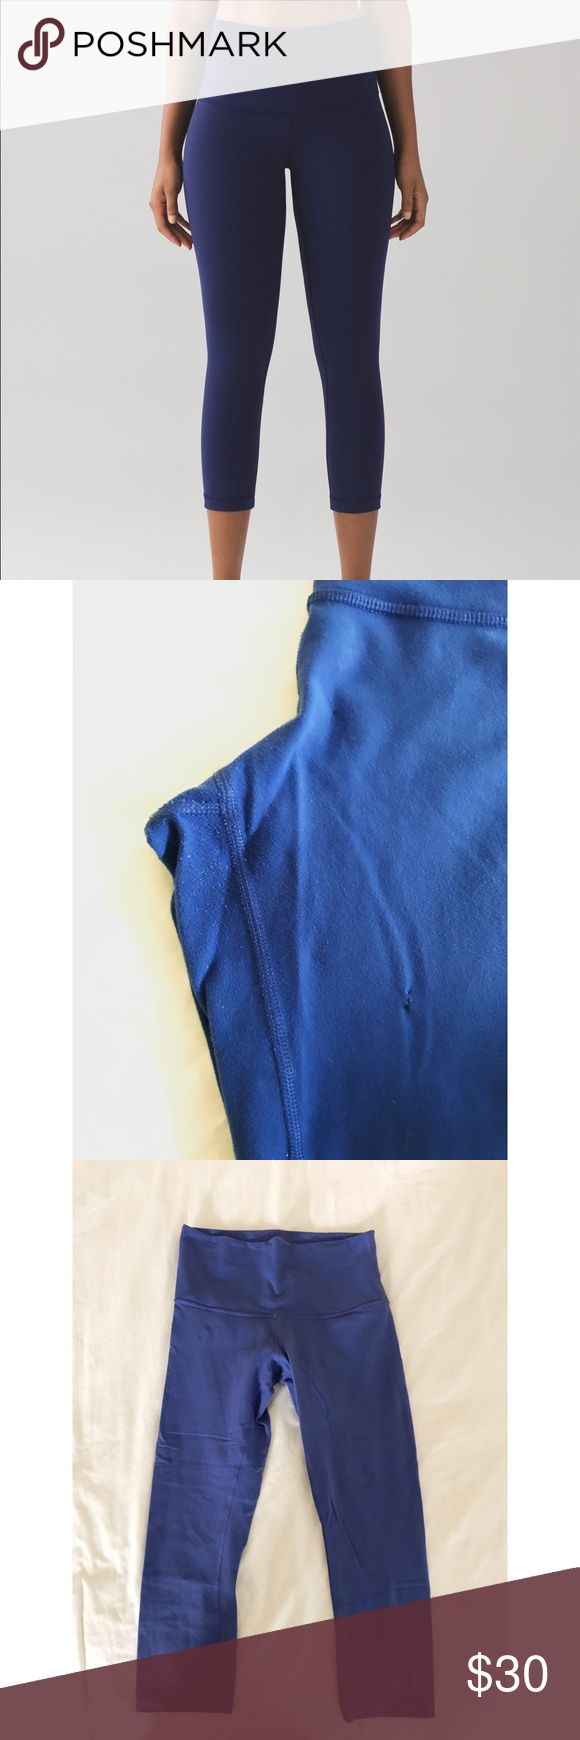 """Lululemon high rise wunder under These pants have been worn. The last picture shows a detail of some pilling in the crotch area as well as a slight """"hole"""" (that has been sewn up with matching thread.) The tiny hole was from a fire spark so the material is seared and will definitely not get bigger. I've worn them for a long time like this and it is hardly noticeable when on. They no longer fit me but thought someone might like to extend their life for a cheap price! Size tag has been removed…"""